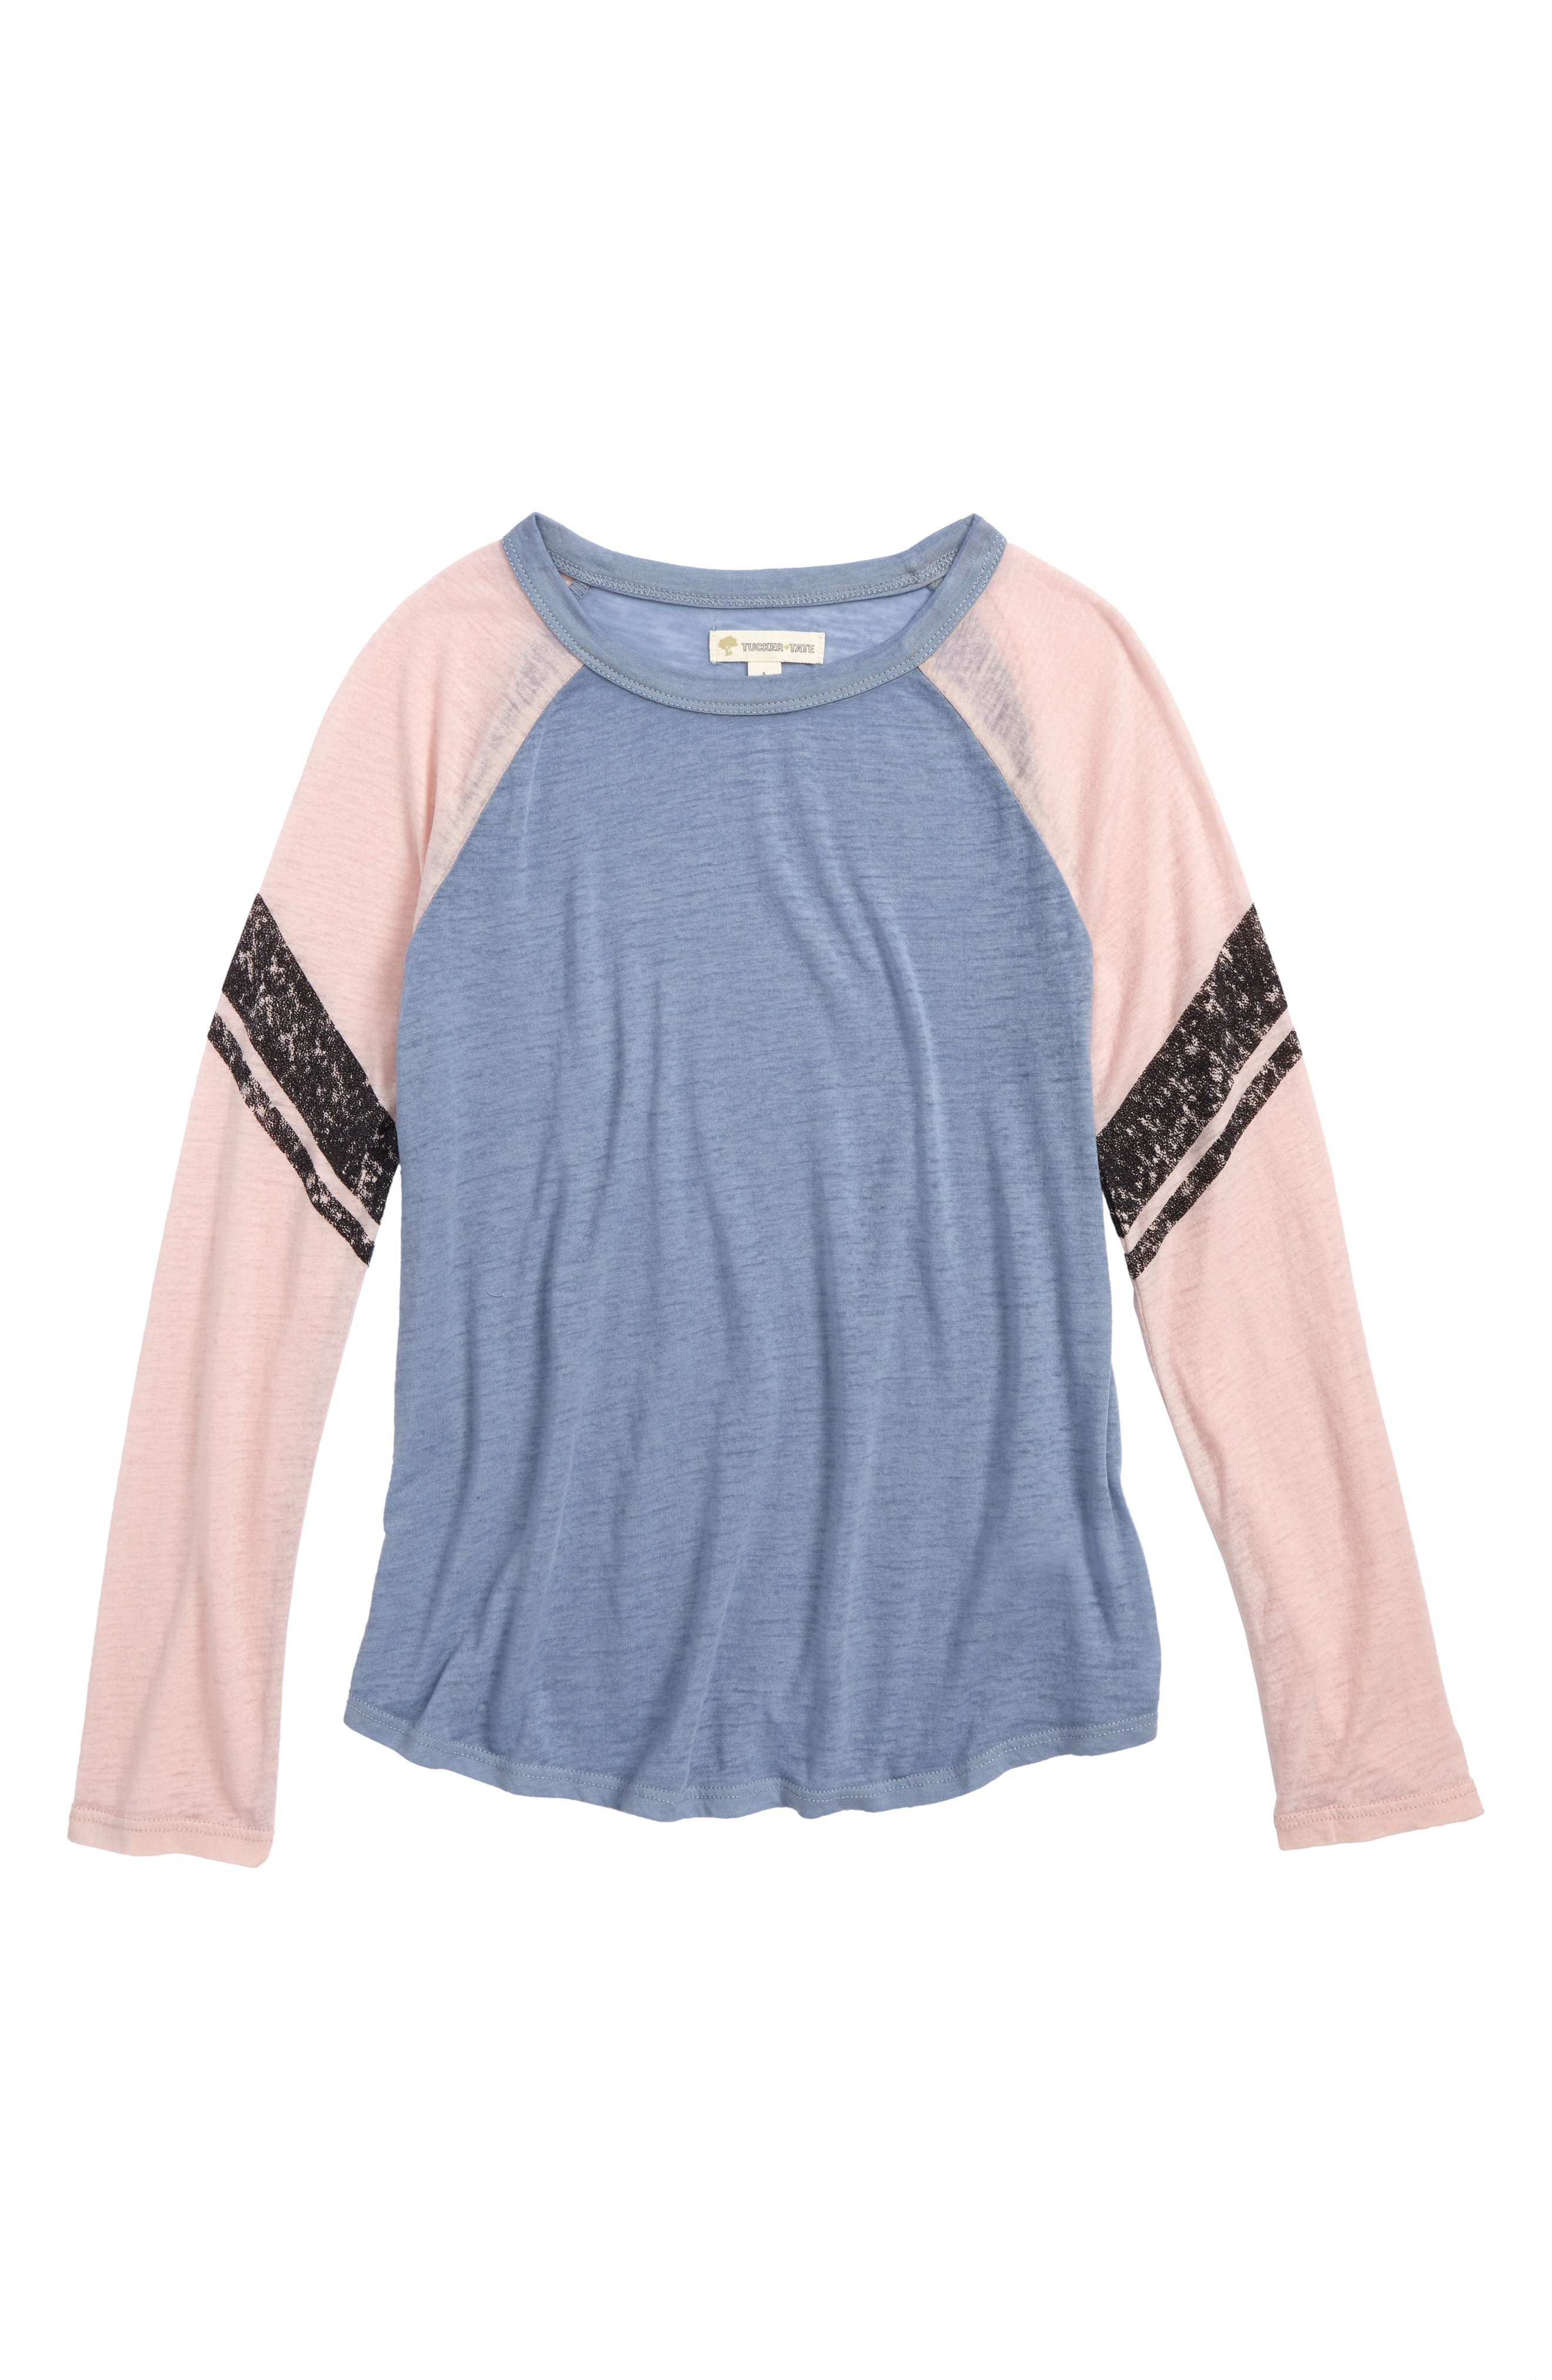 Main Image - Tucker + Tate Raglan Sleeve Tee (Big Girls)